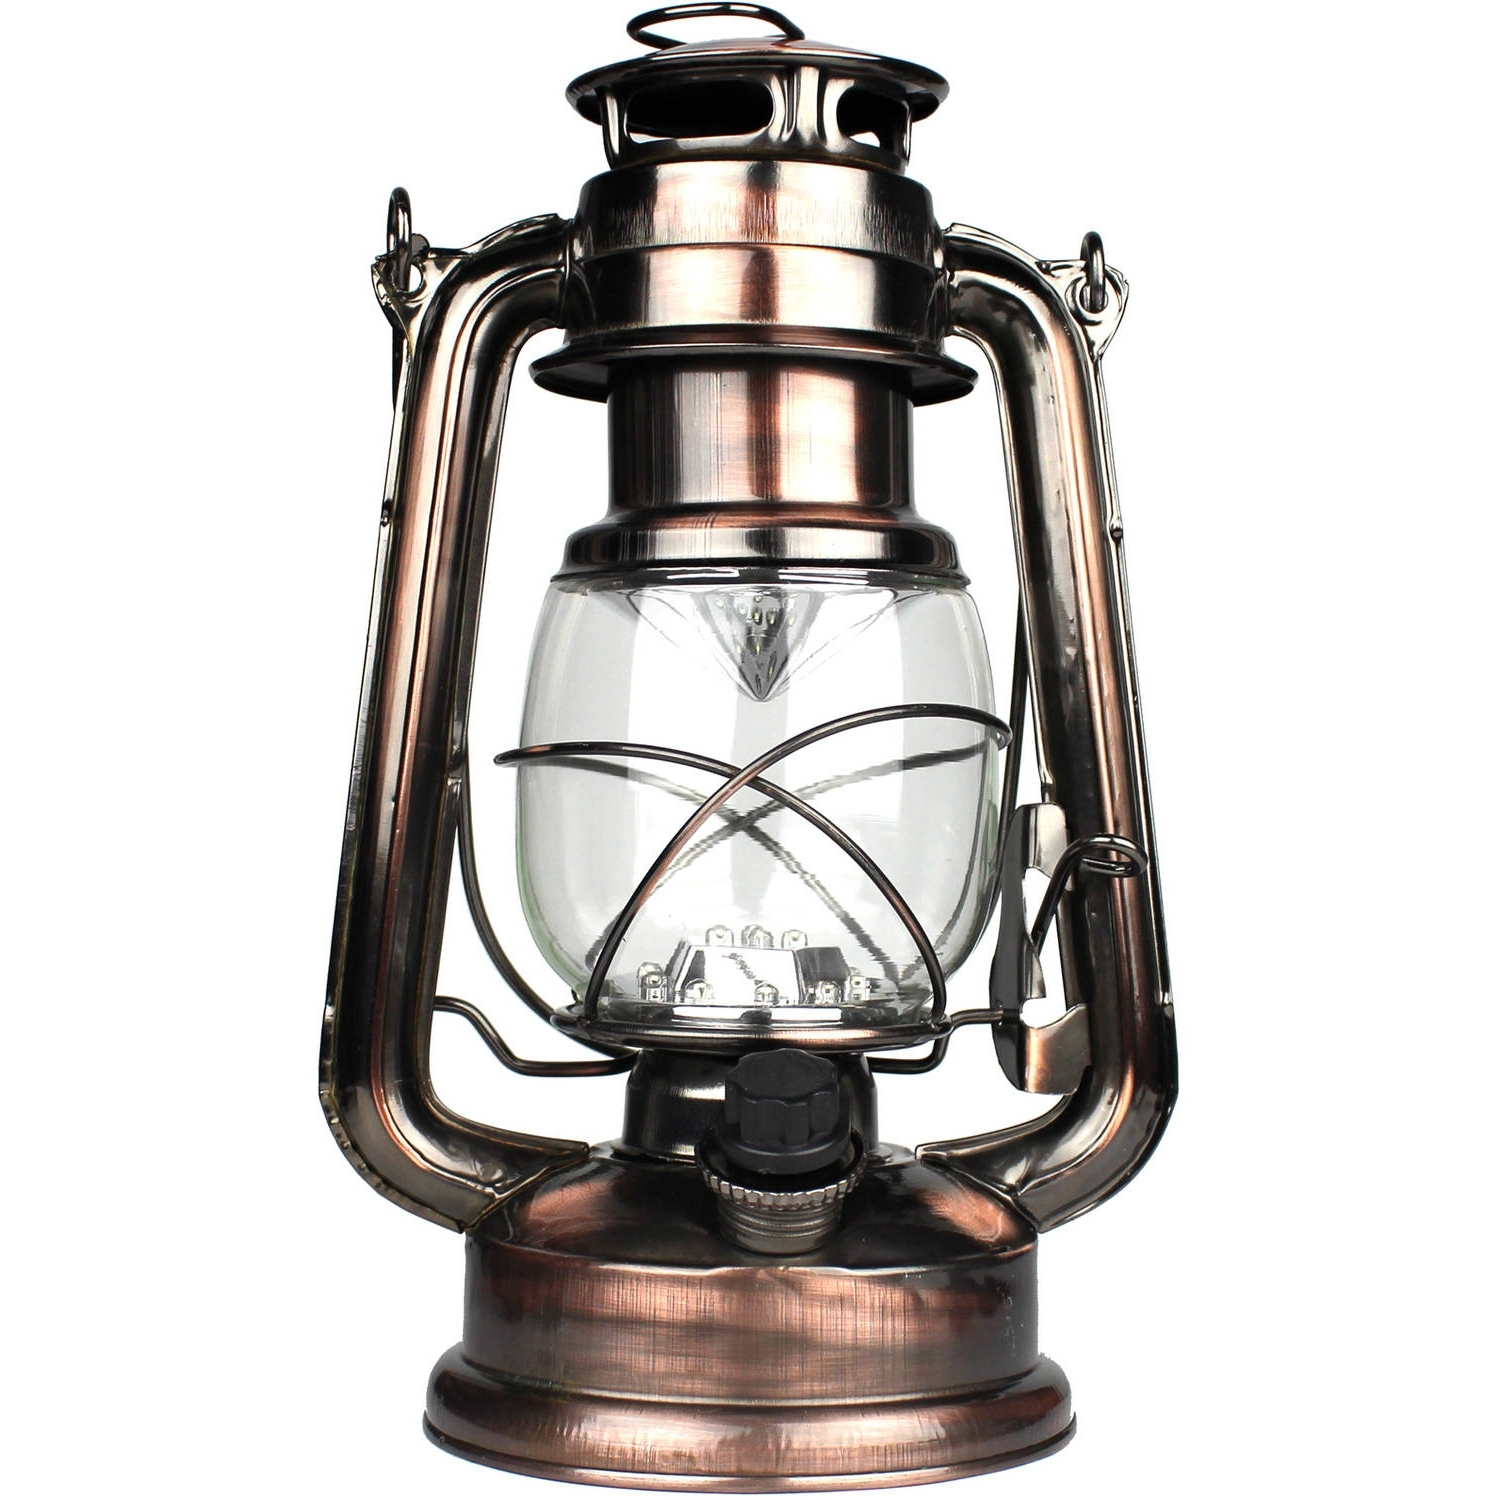 Walmart Outdoor Lanterns Intended For Famous Coleman 4d Led Camping Lantern – Walmart (View 14 of 20)